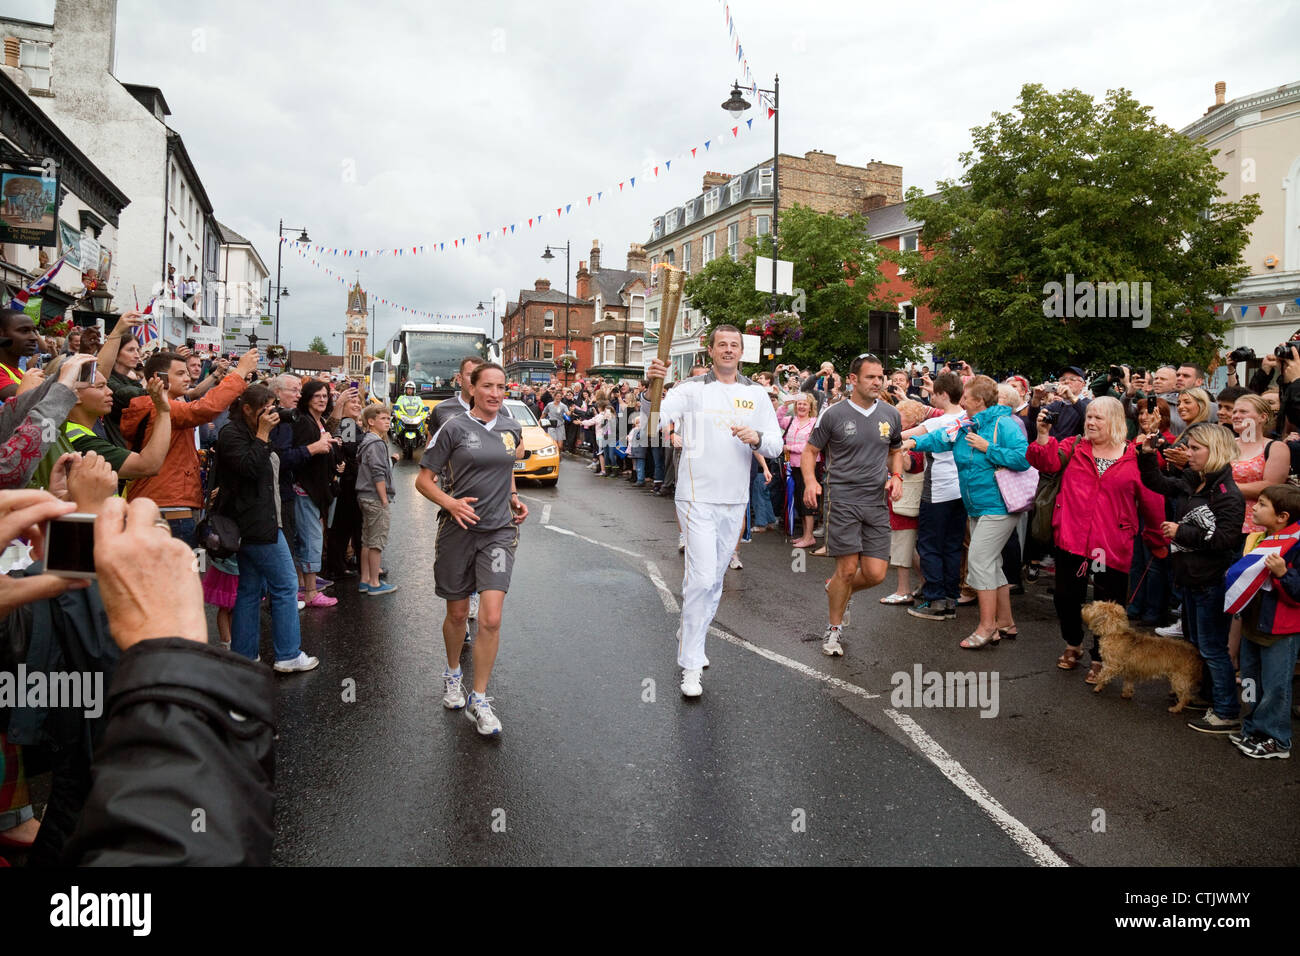 The 2012 Olympic Torch relay, High St,  Newmarket Suffolk East Anglia UK - Stock Image